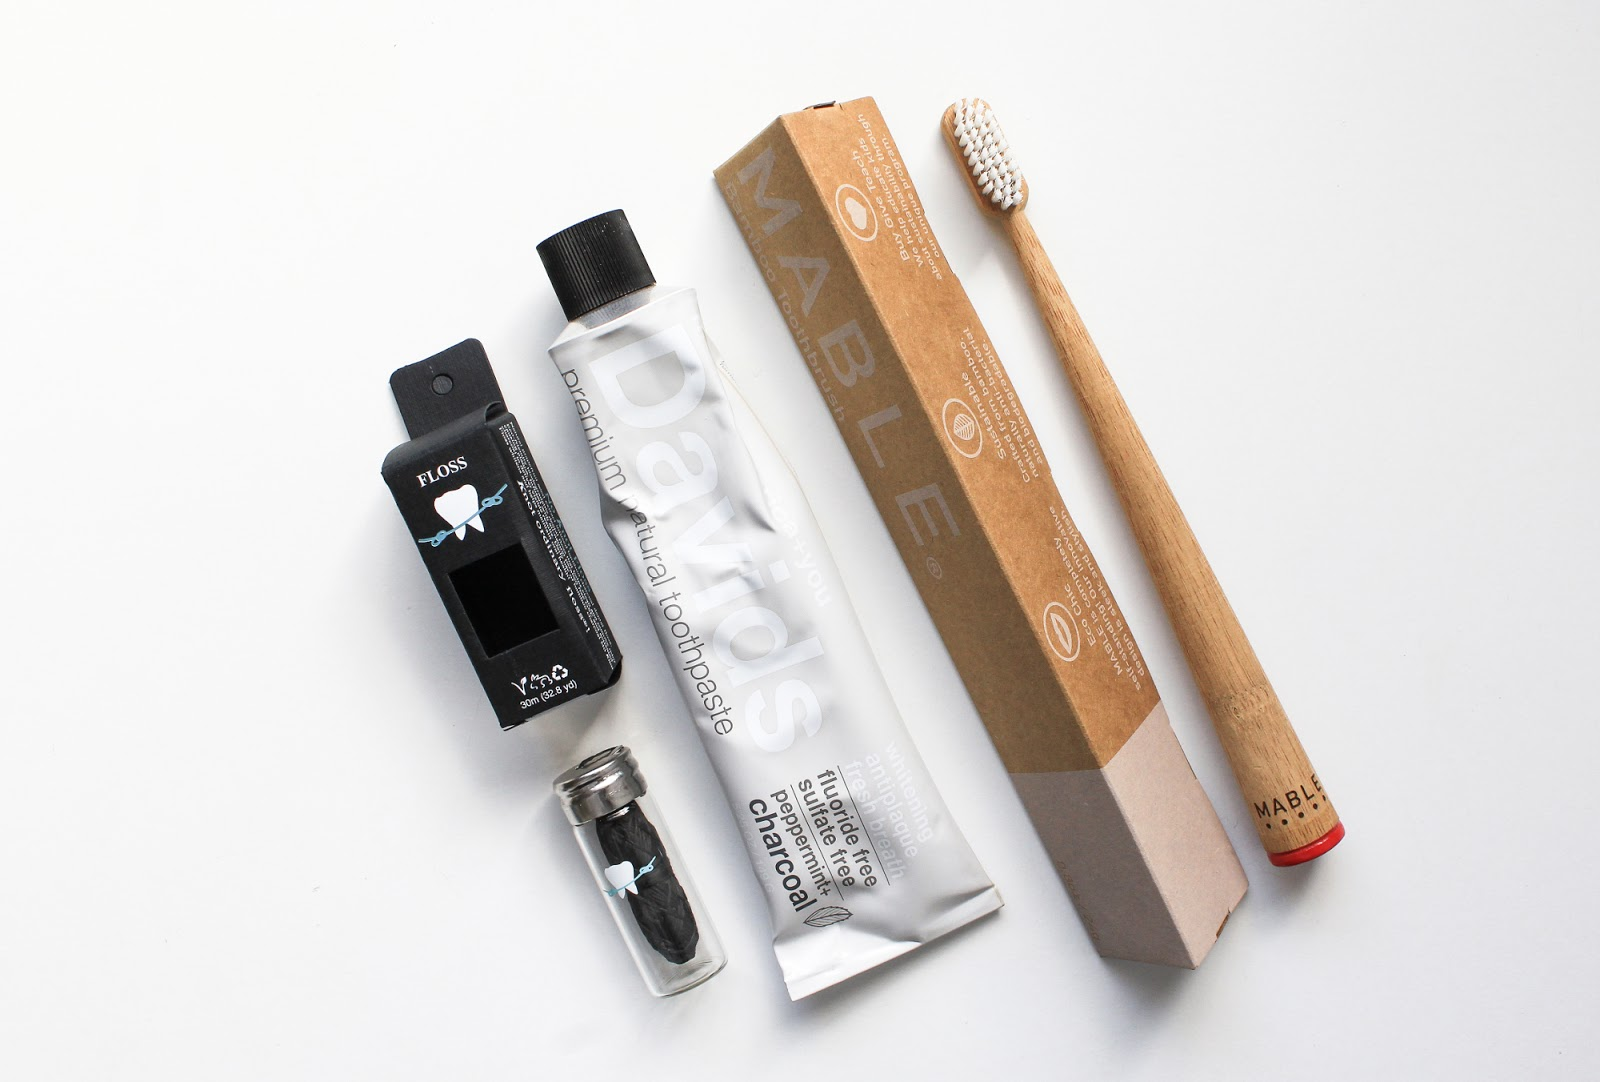 Living Lighter Limited Edition Discovery Beauty Heroes Davids Natural Premium Toothpaste Peppermint + Charcoal, Lucky Teeth Bamboo Vegan Floss, Mable Bamboo Toothbrush